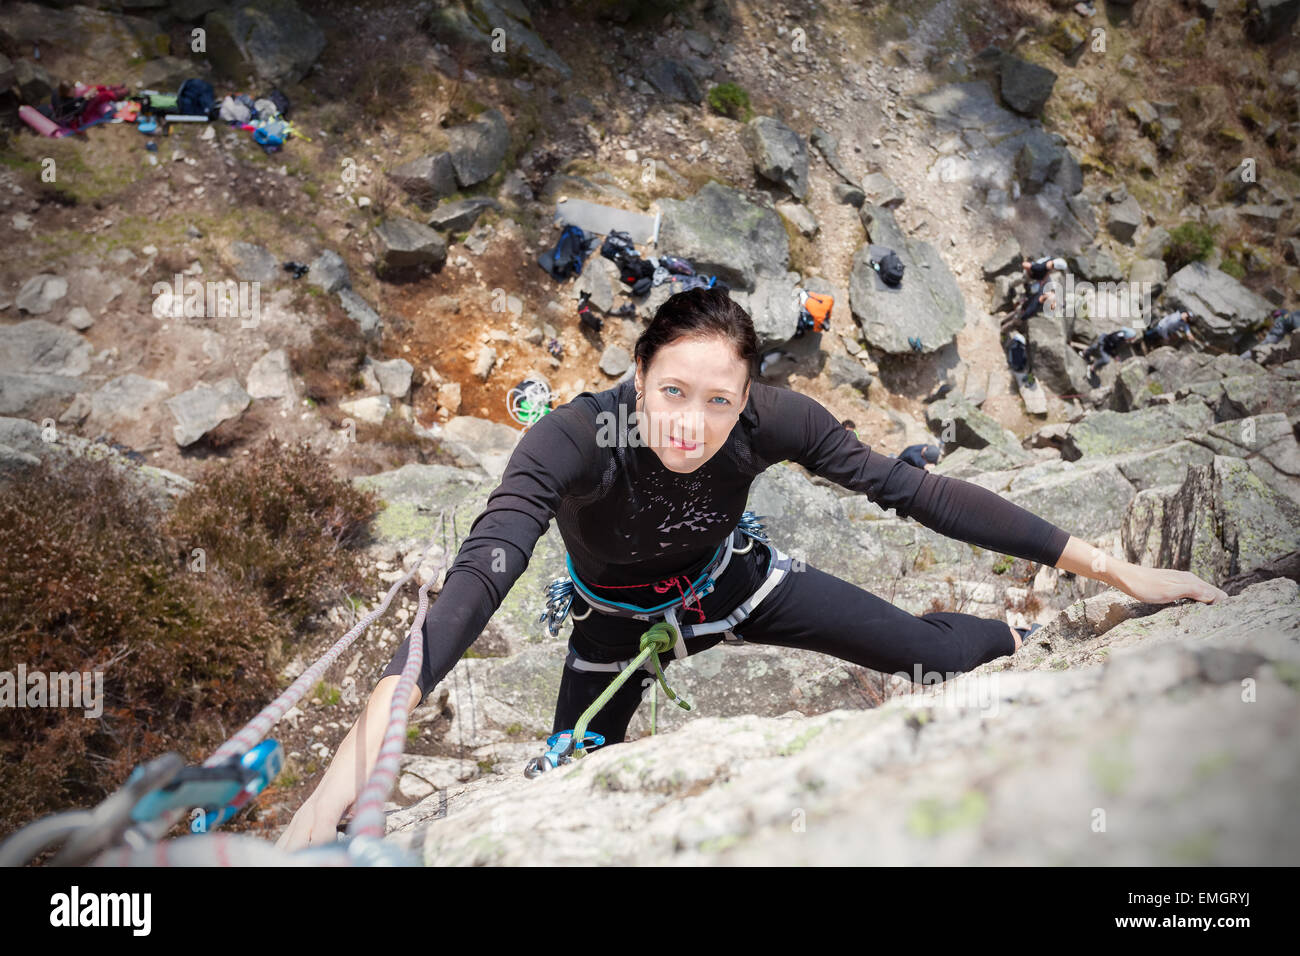 Young woman climbing wall, active woman concept picture. - Stock Image